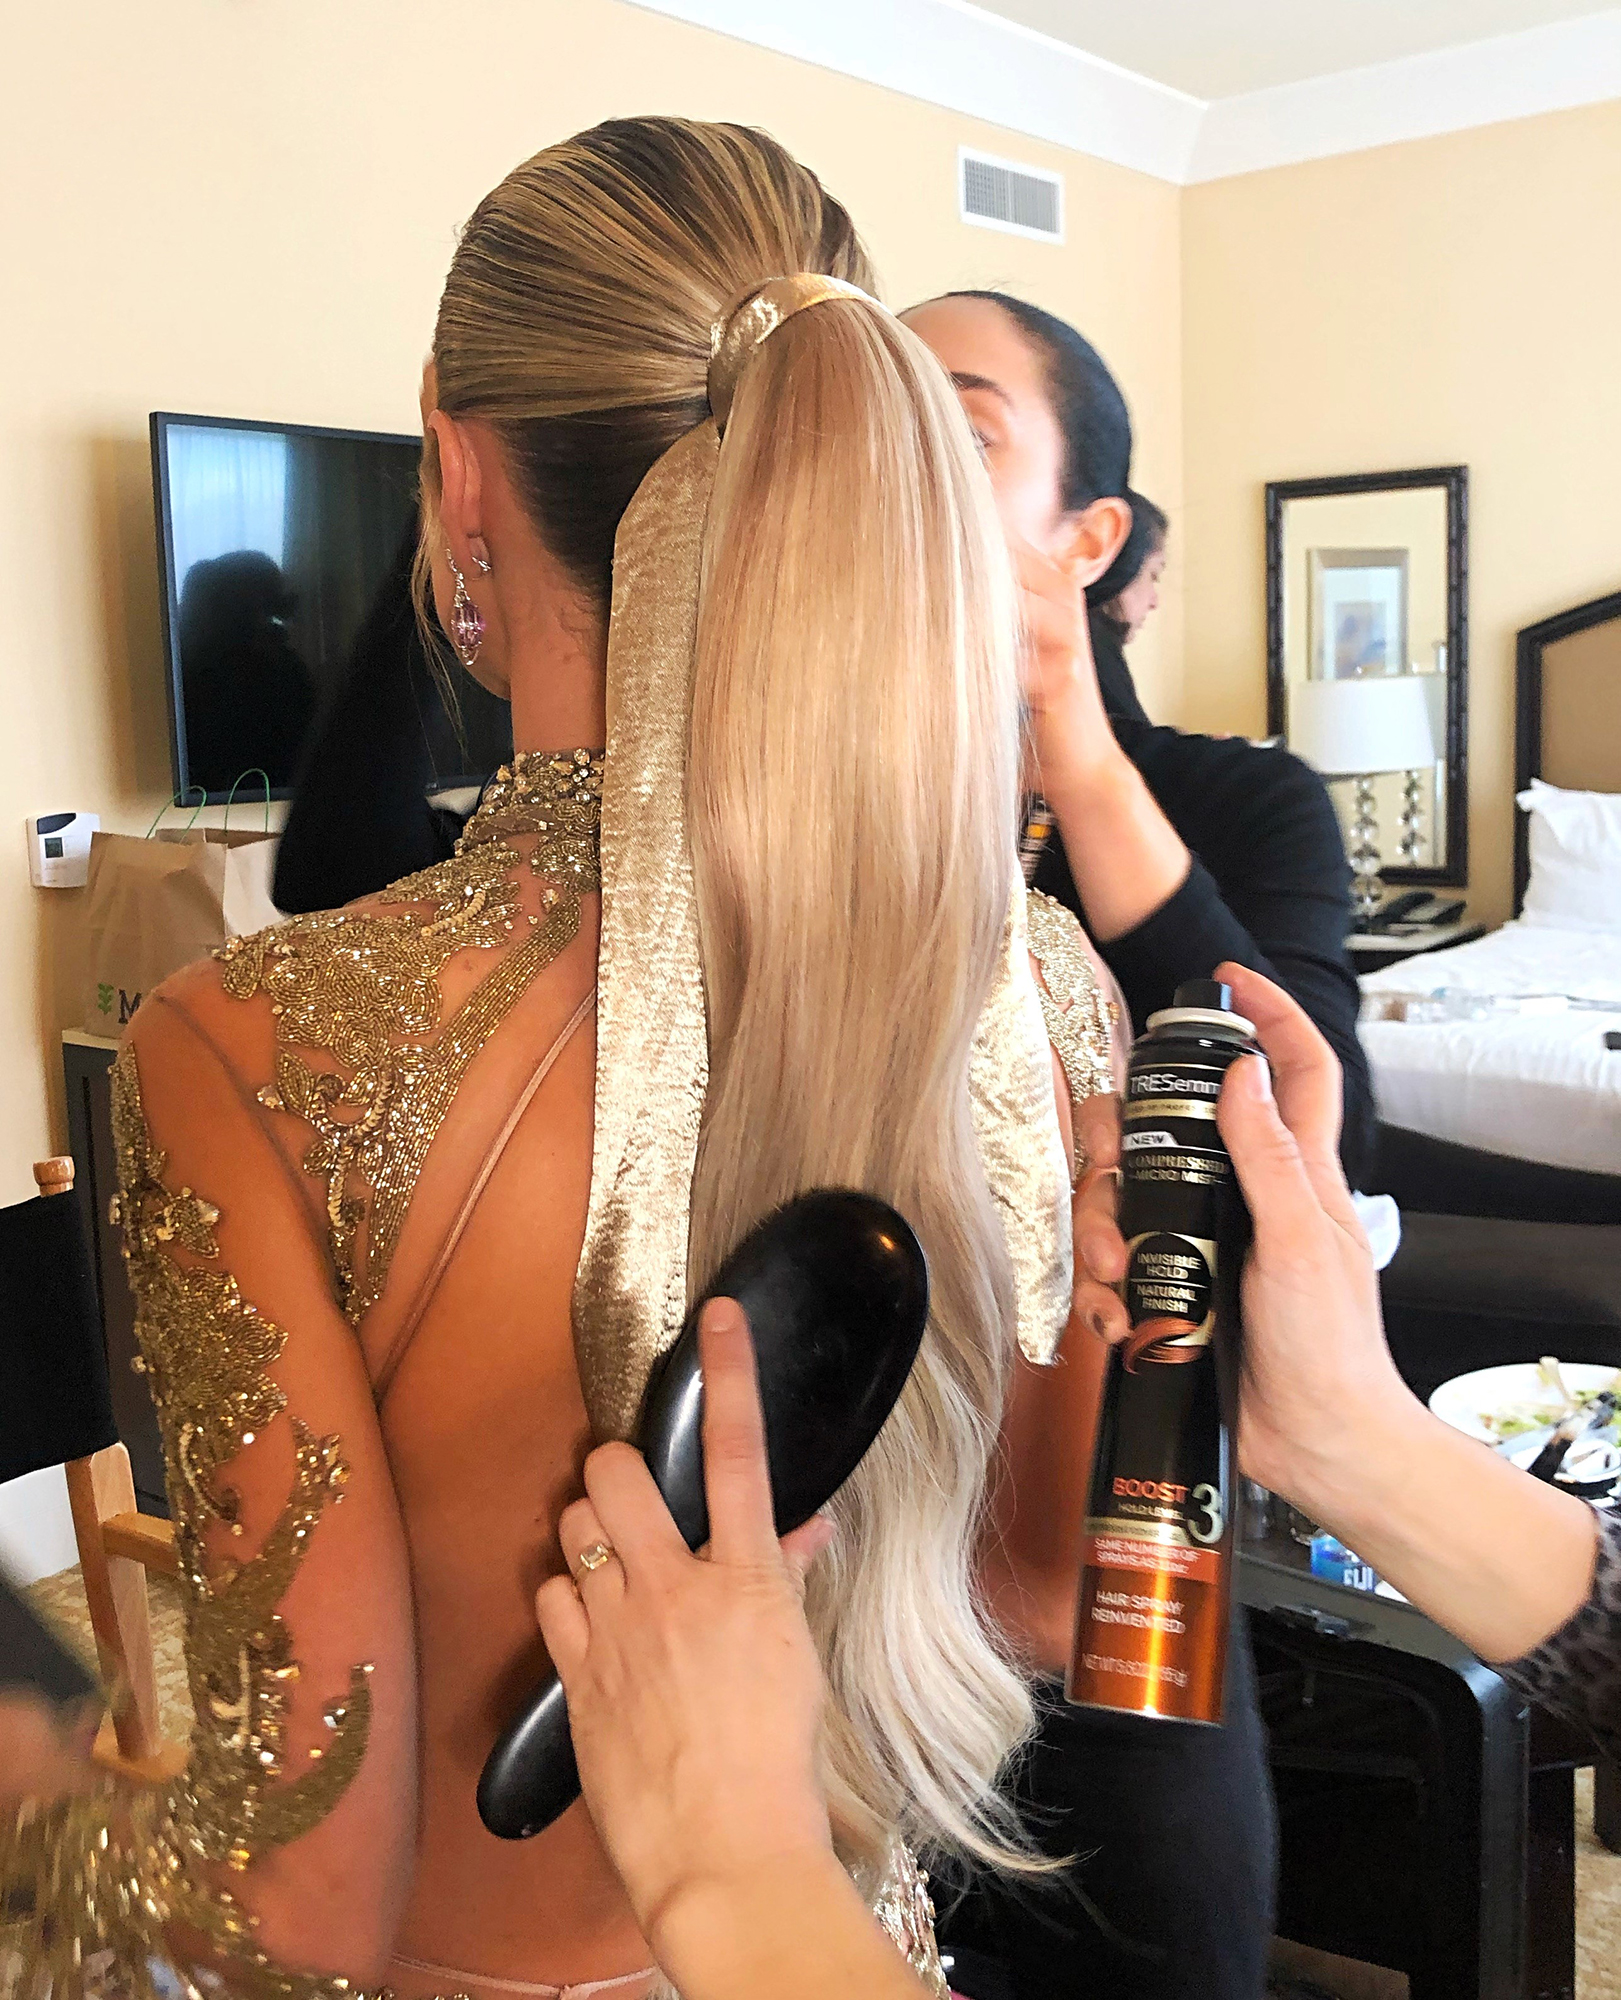 Kristin-Cavallari's-Golden-Globes-Beauty-Prep - To ensure a super sleek effect at the crown, the hair pro prepped the TV personality's strands with TRESemmé Thermal Creations Blow Dry Balm before blowdrying with her ghd Air Hair Dryer and a smoothing brush. Working with Cavallari's natural hair, Marjan created two ponytails stacked on top of each other (another #ProTip of hers) and kept everything in place with the TRESemmé TRES Two Extra Hold Mousse at the roots.